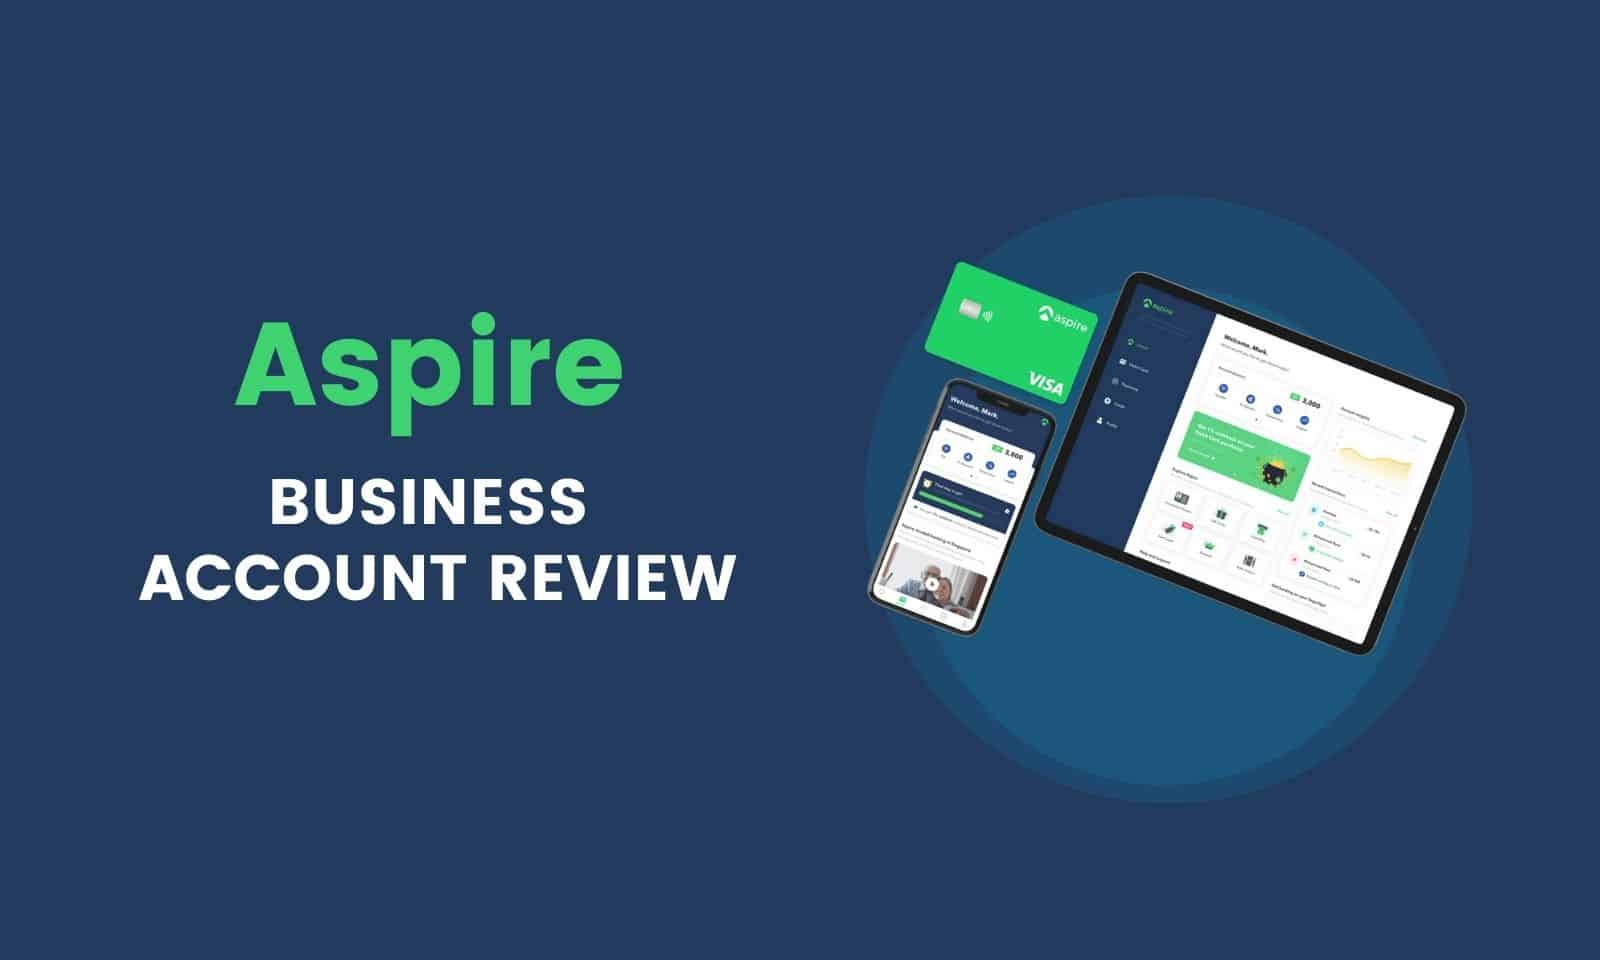 Aspire Business Account Review Cover Image